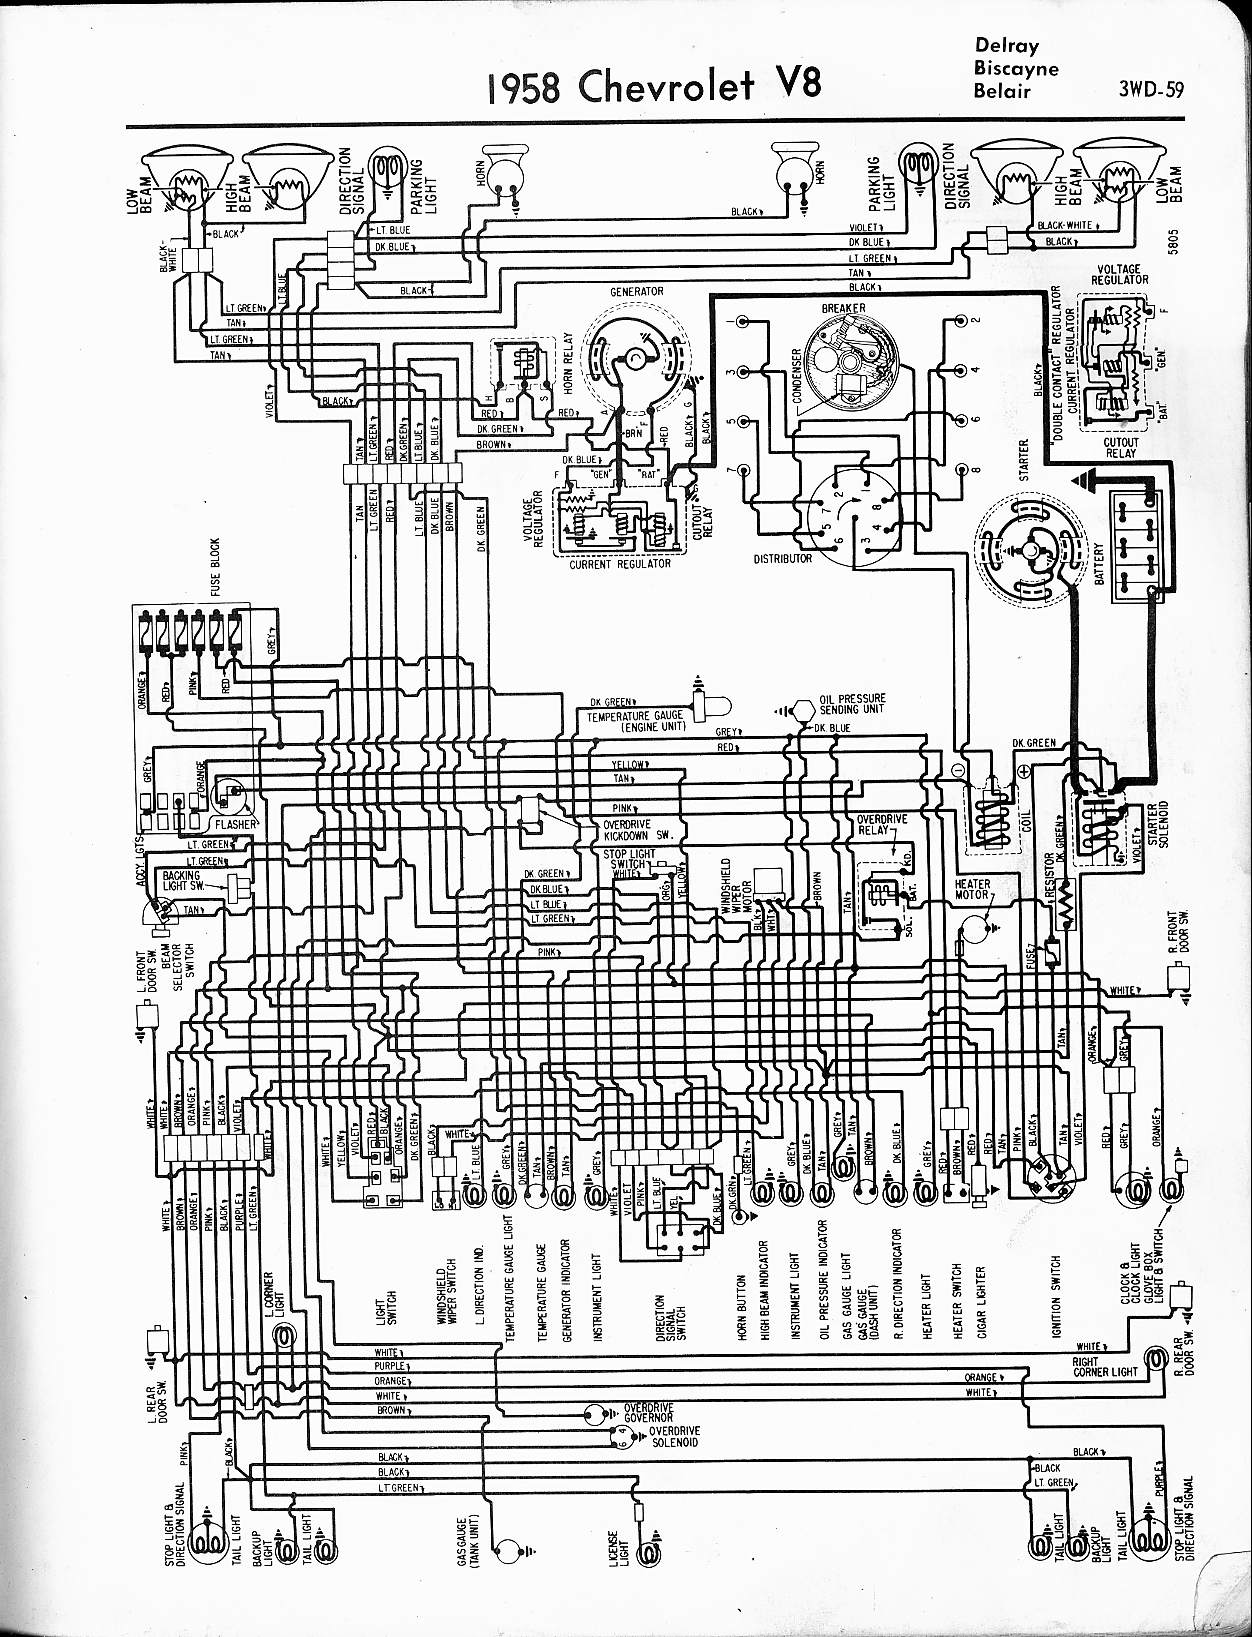 1958 impala wiring diagram easy wiring diagrams u2022 rh art isere com